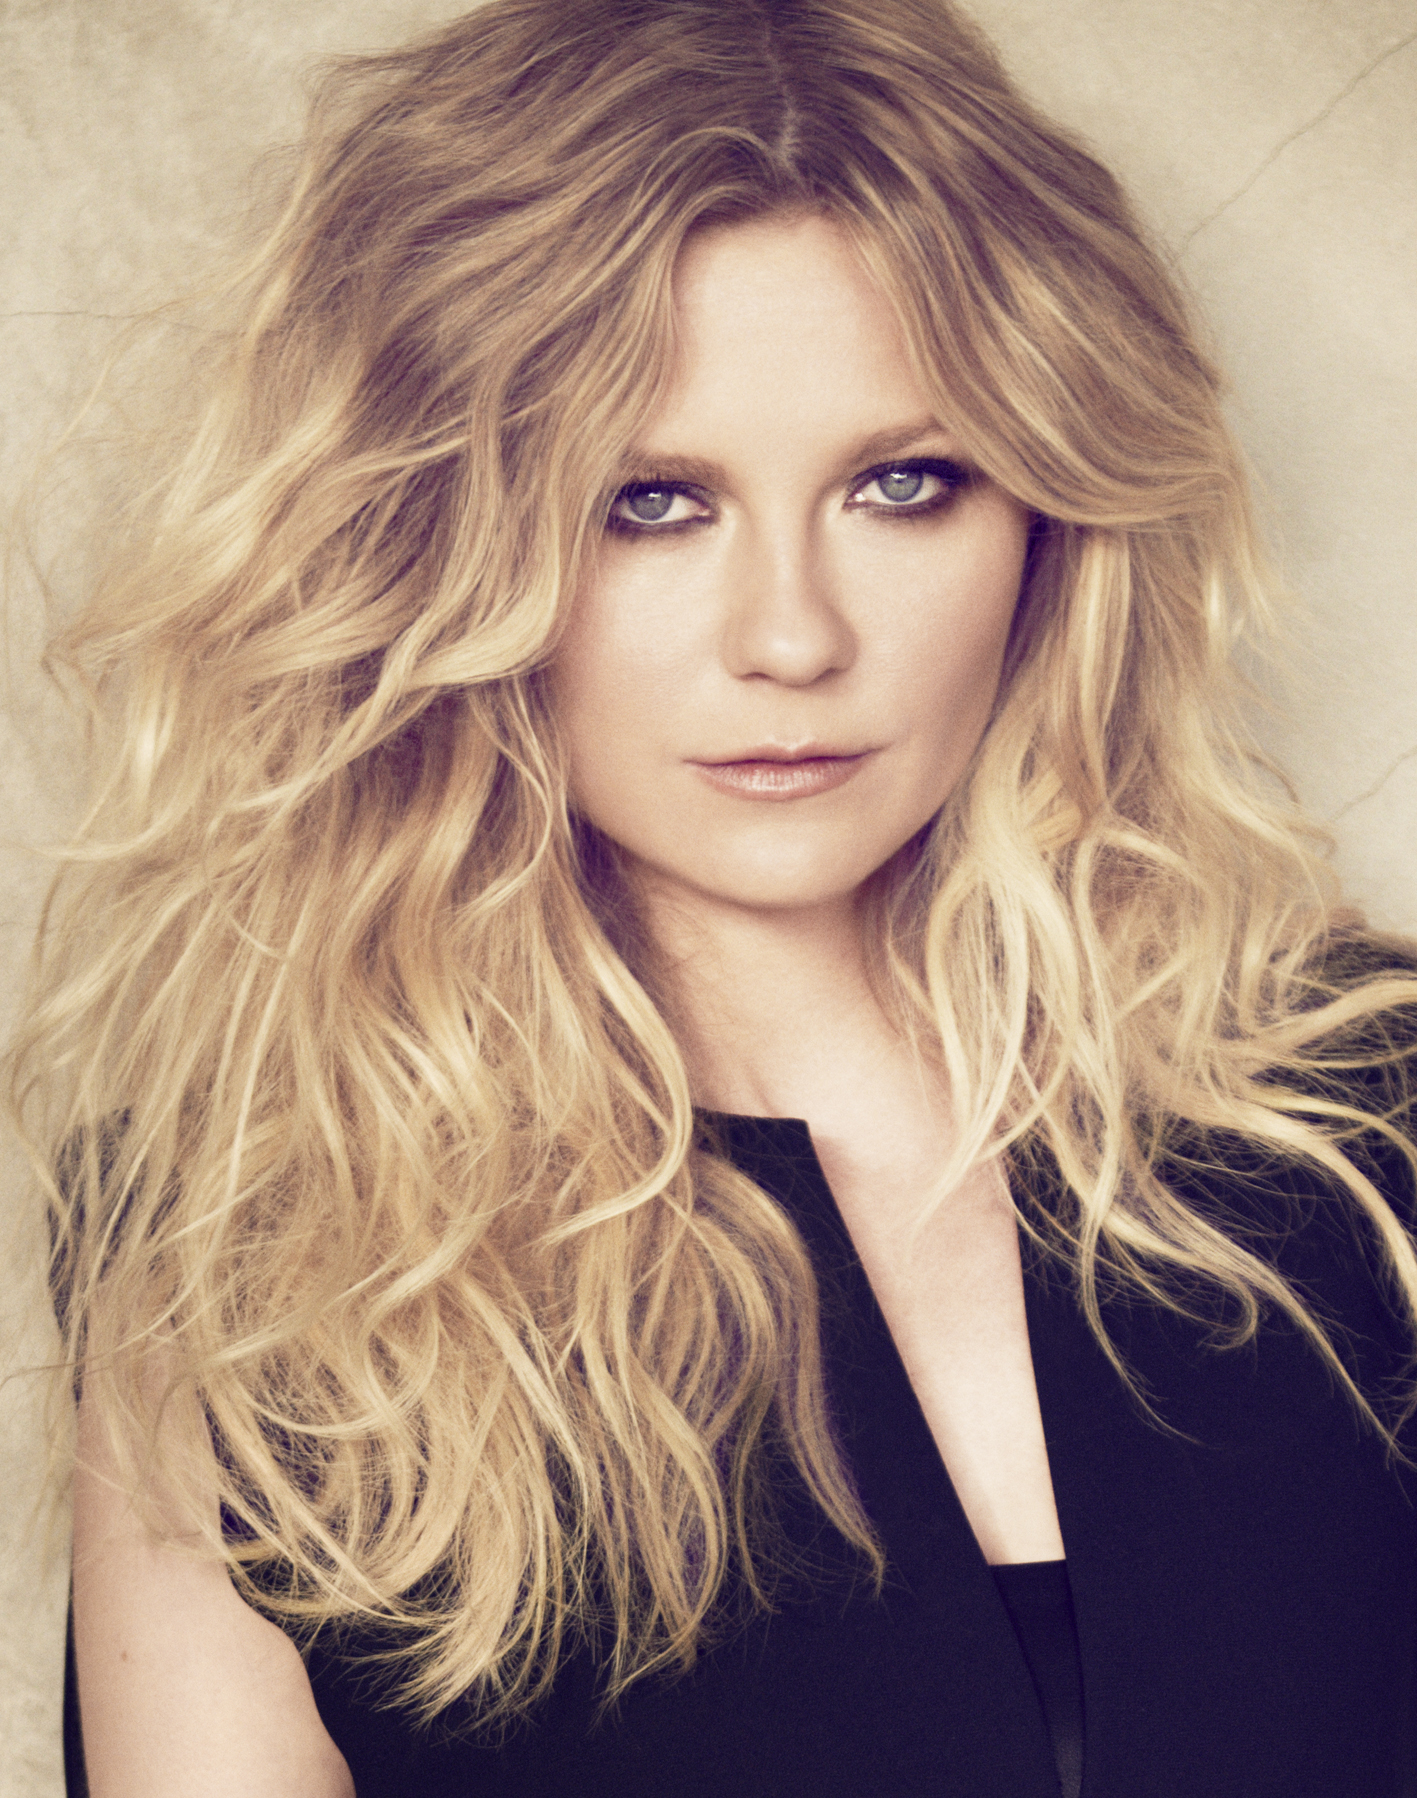 kirsten-dunst-portrait-matthew-brookes-for-l-oral-professionnel